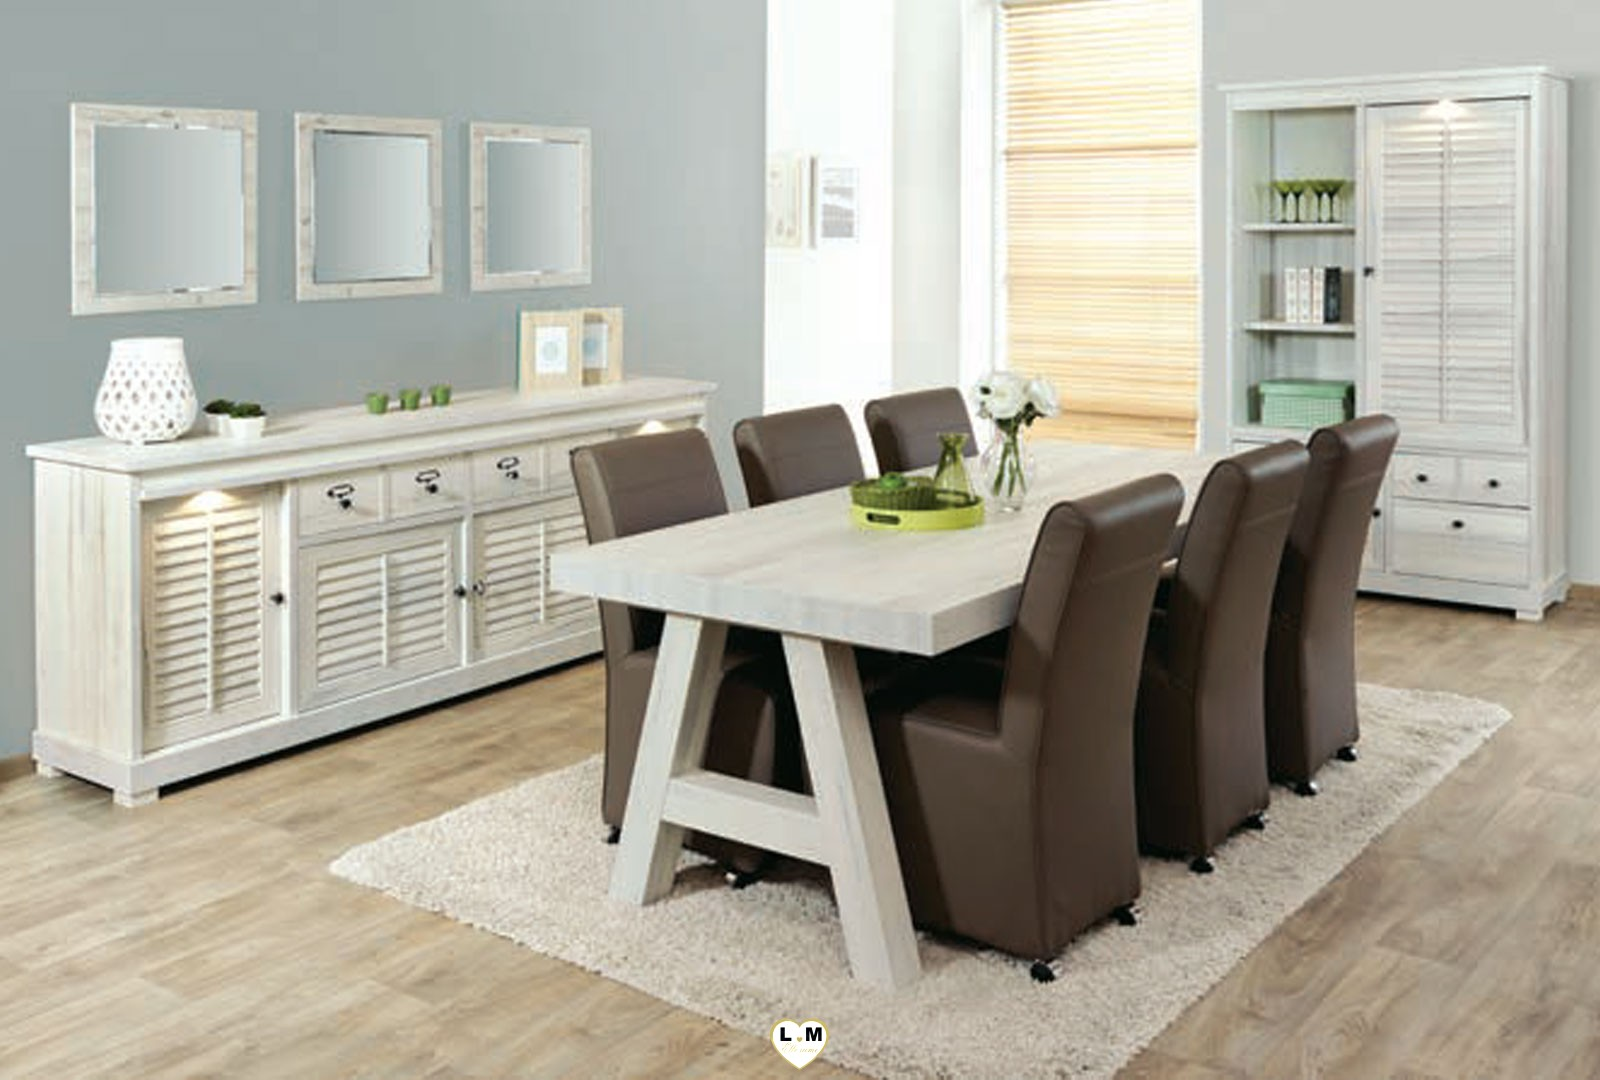 merida bois blanc vieilli ensemble sejour salle a manger lignemeuble com. Black Bedroom Furniture Sets. Home Design Ideas